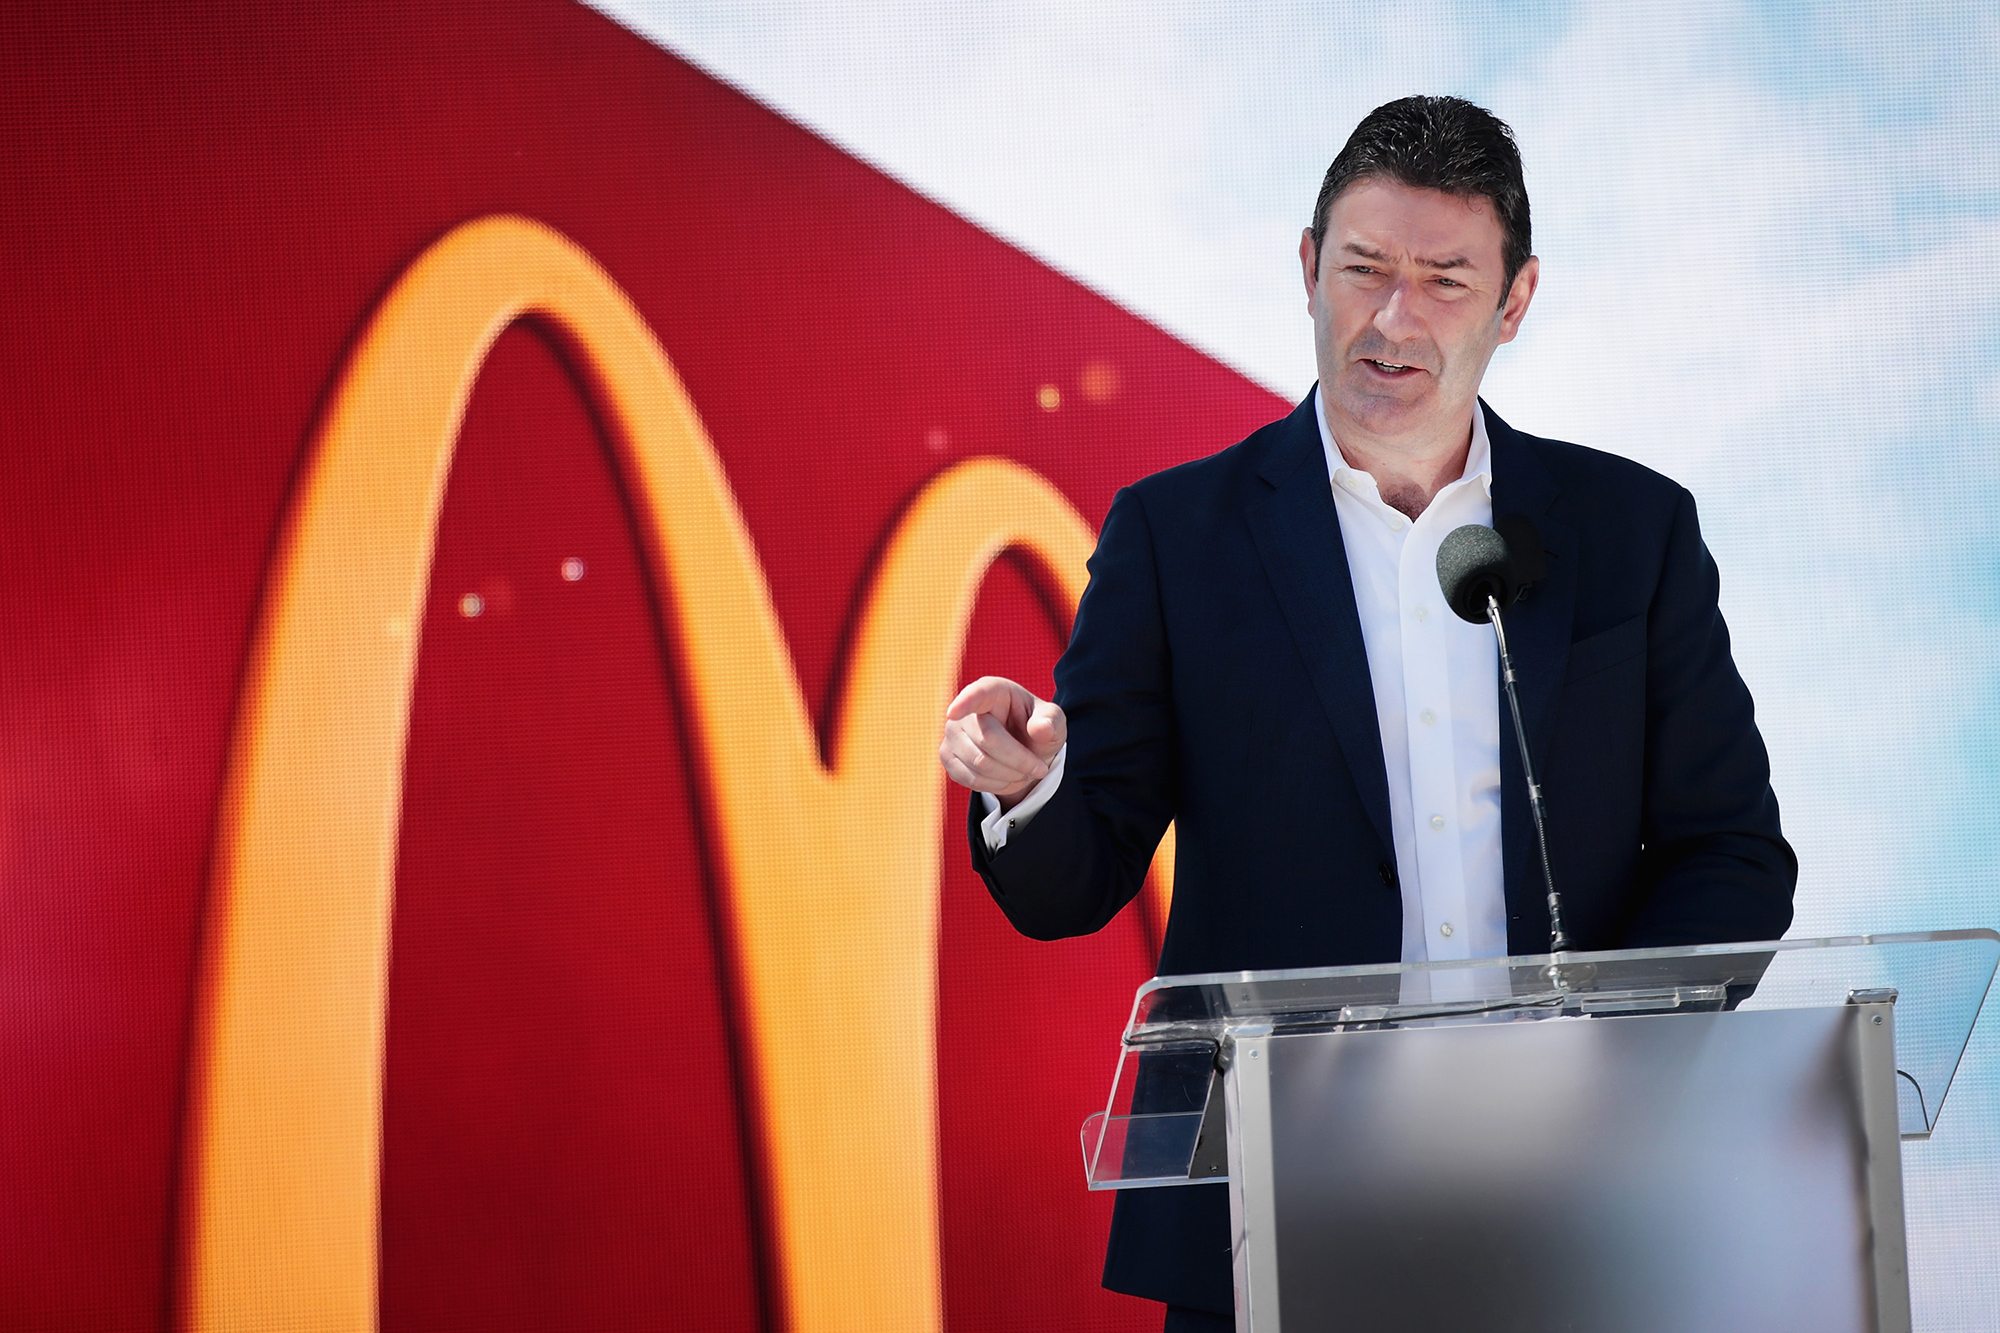 CHICAGO, IL - JUNE 04: McDonald's CEO Stephen Easterbrook unveils the company's new corporate headquarters during a grand opening ceremony on June 4, 2018 in Chicago, Illinois. The company headquarters is returning to the city, which it left in 1971, from suburban Oak Brook. Approximately 2,000 people will work from the building. (Photo by Scott Olson/Getty Images)